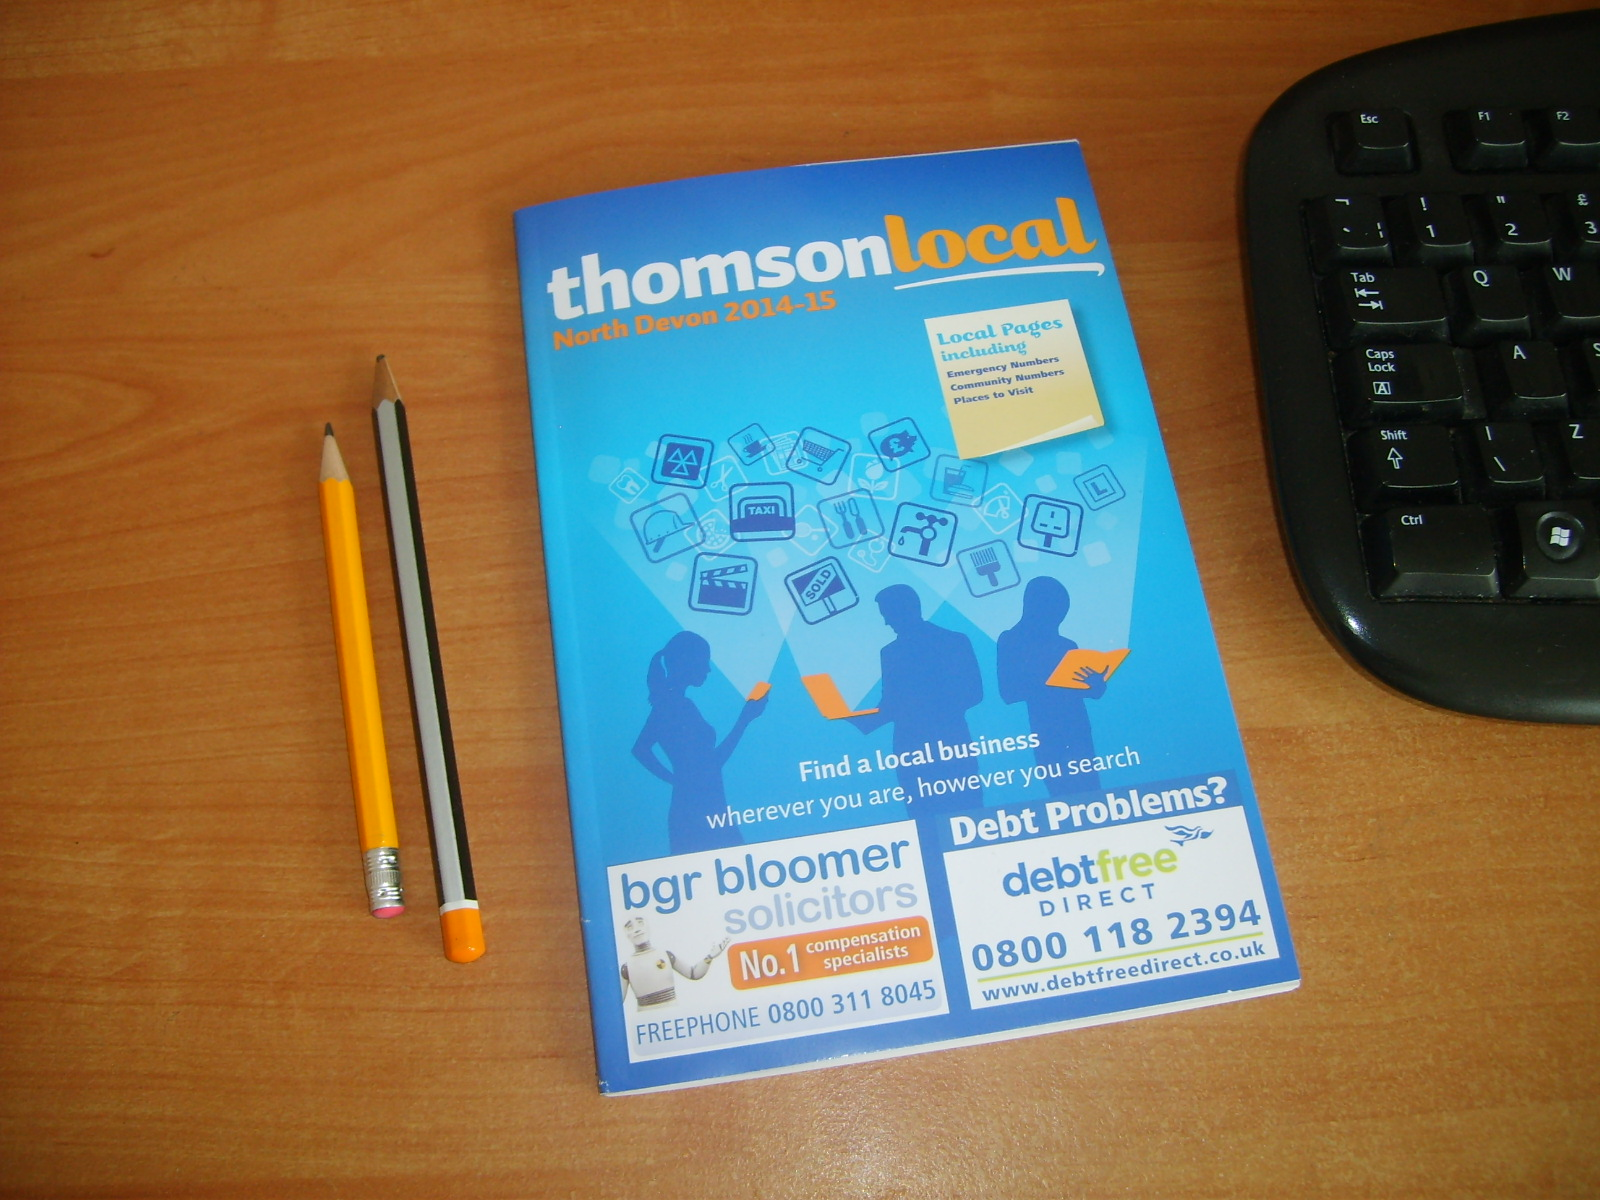 Increase Brand Visibility By Advertising With Thomson Local